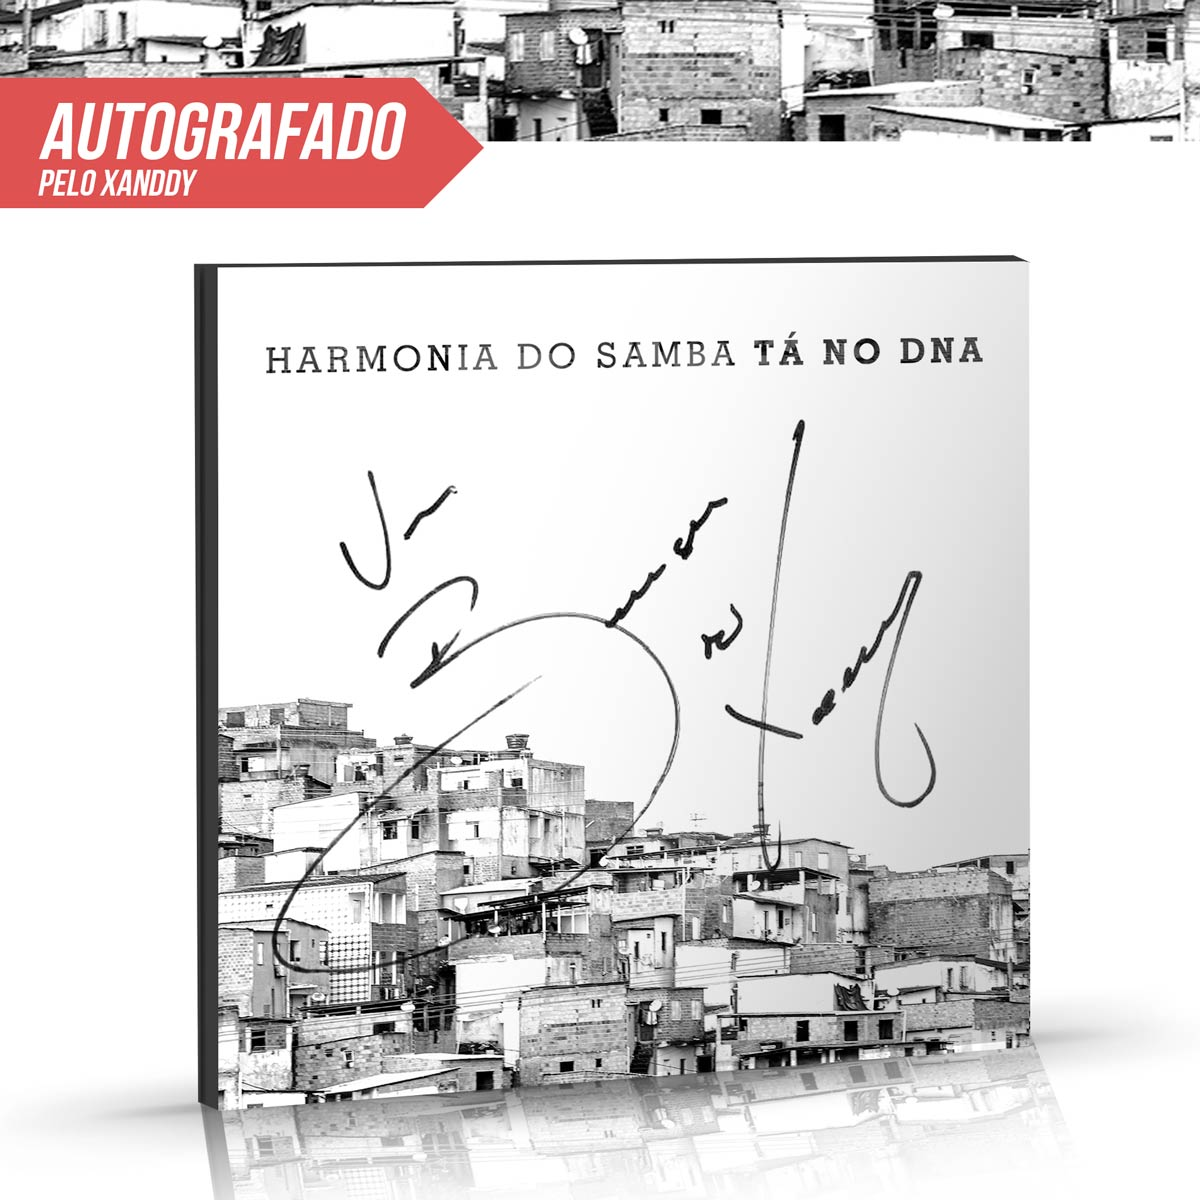 CD Harmonia do Samba T� no DNA AUTOGRAFADO pelo Xanddy